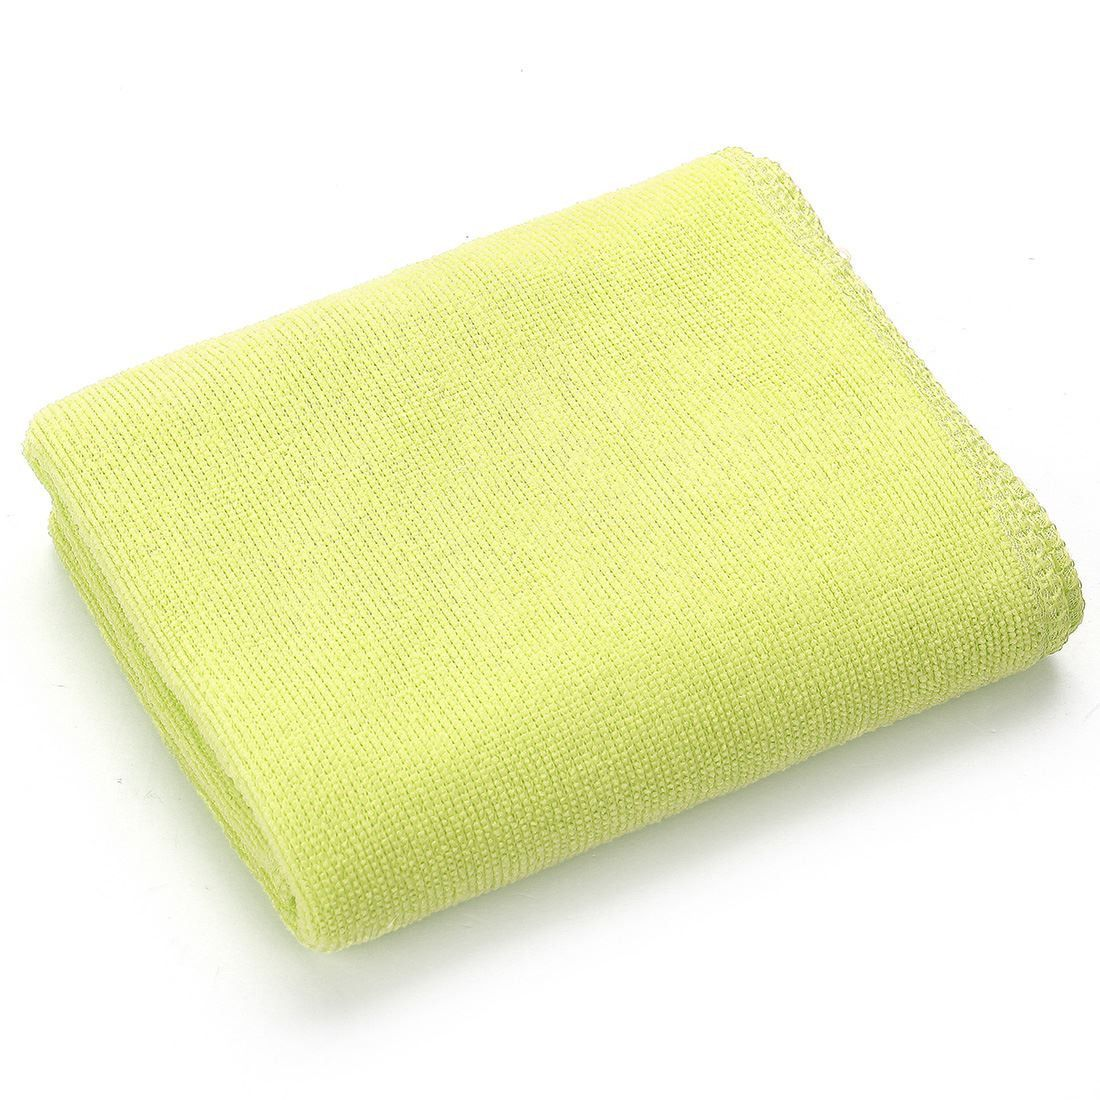 New 1pcs 30x70cm Soft Microfiber Absorbent Car Home Wash Cleaning Towel Washcloth 7 Colors